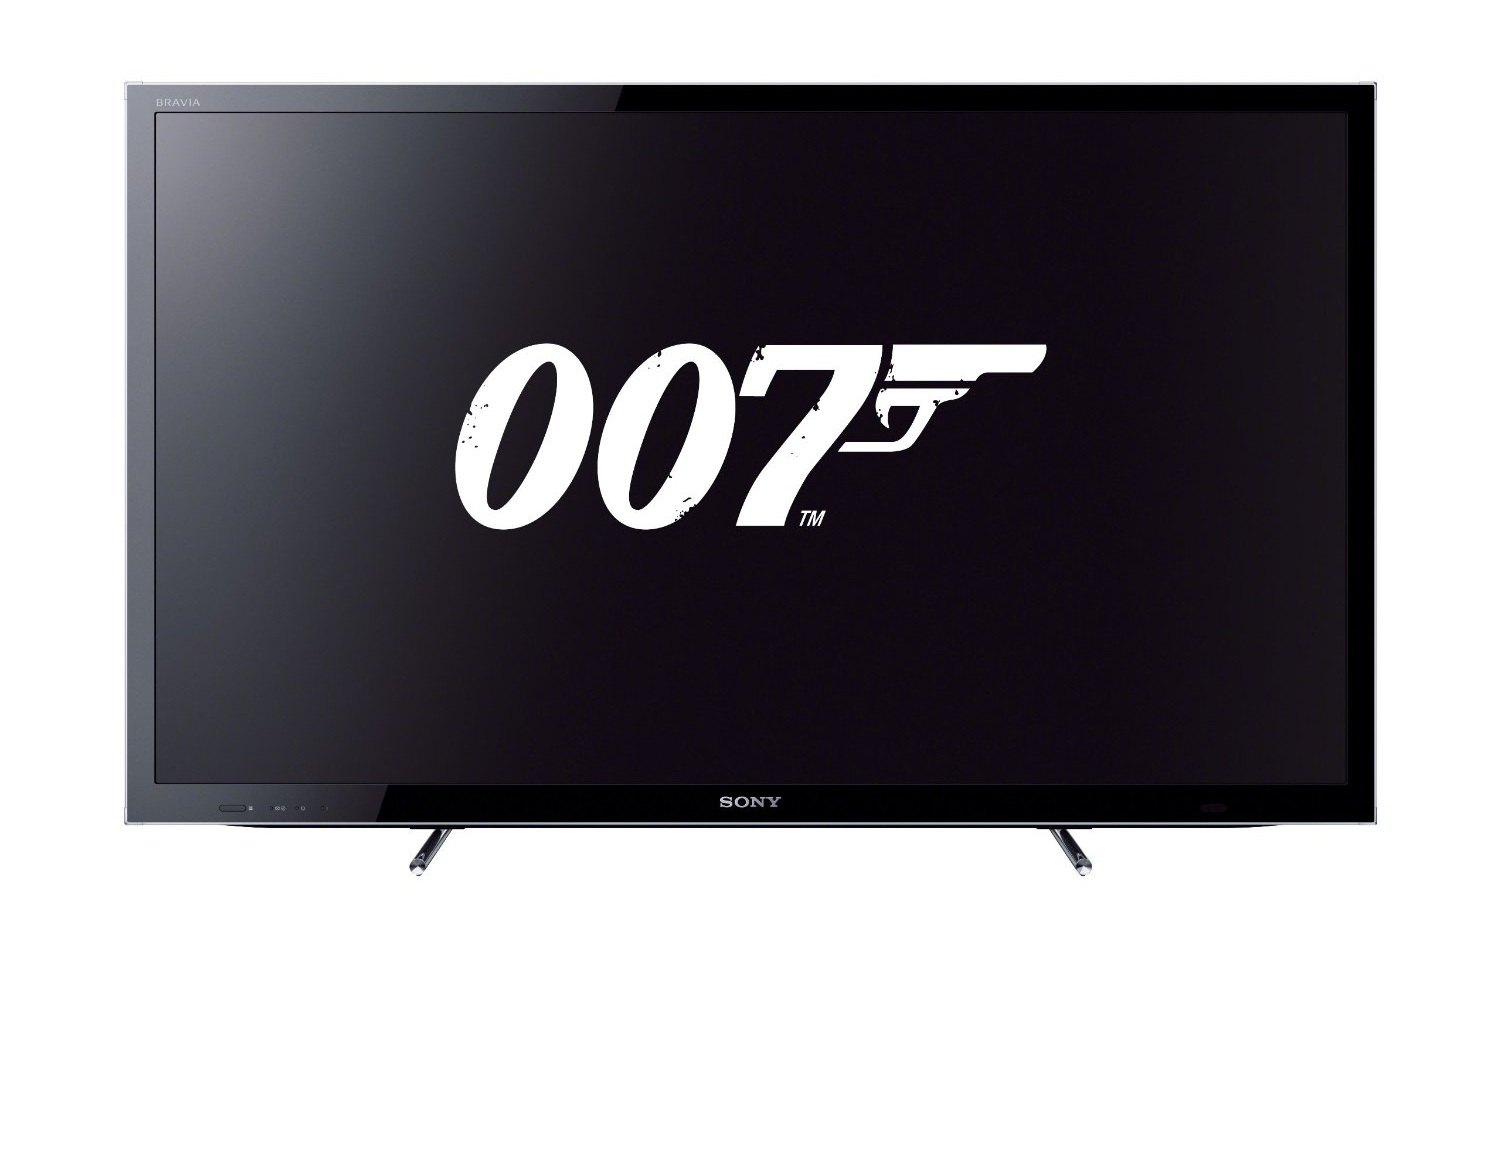 sony bravia hx755 3d led tv mit brillanter optik im test. Black Bedroom Furniture Sets. Home Design Ideas